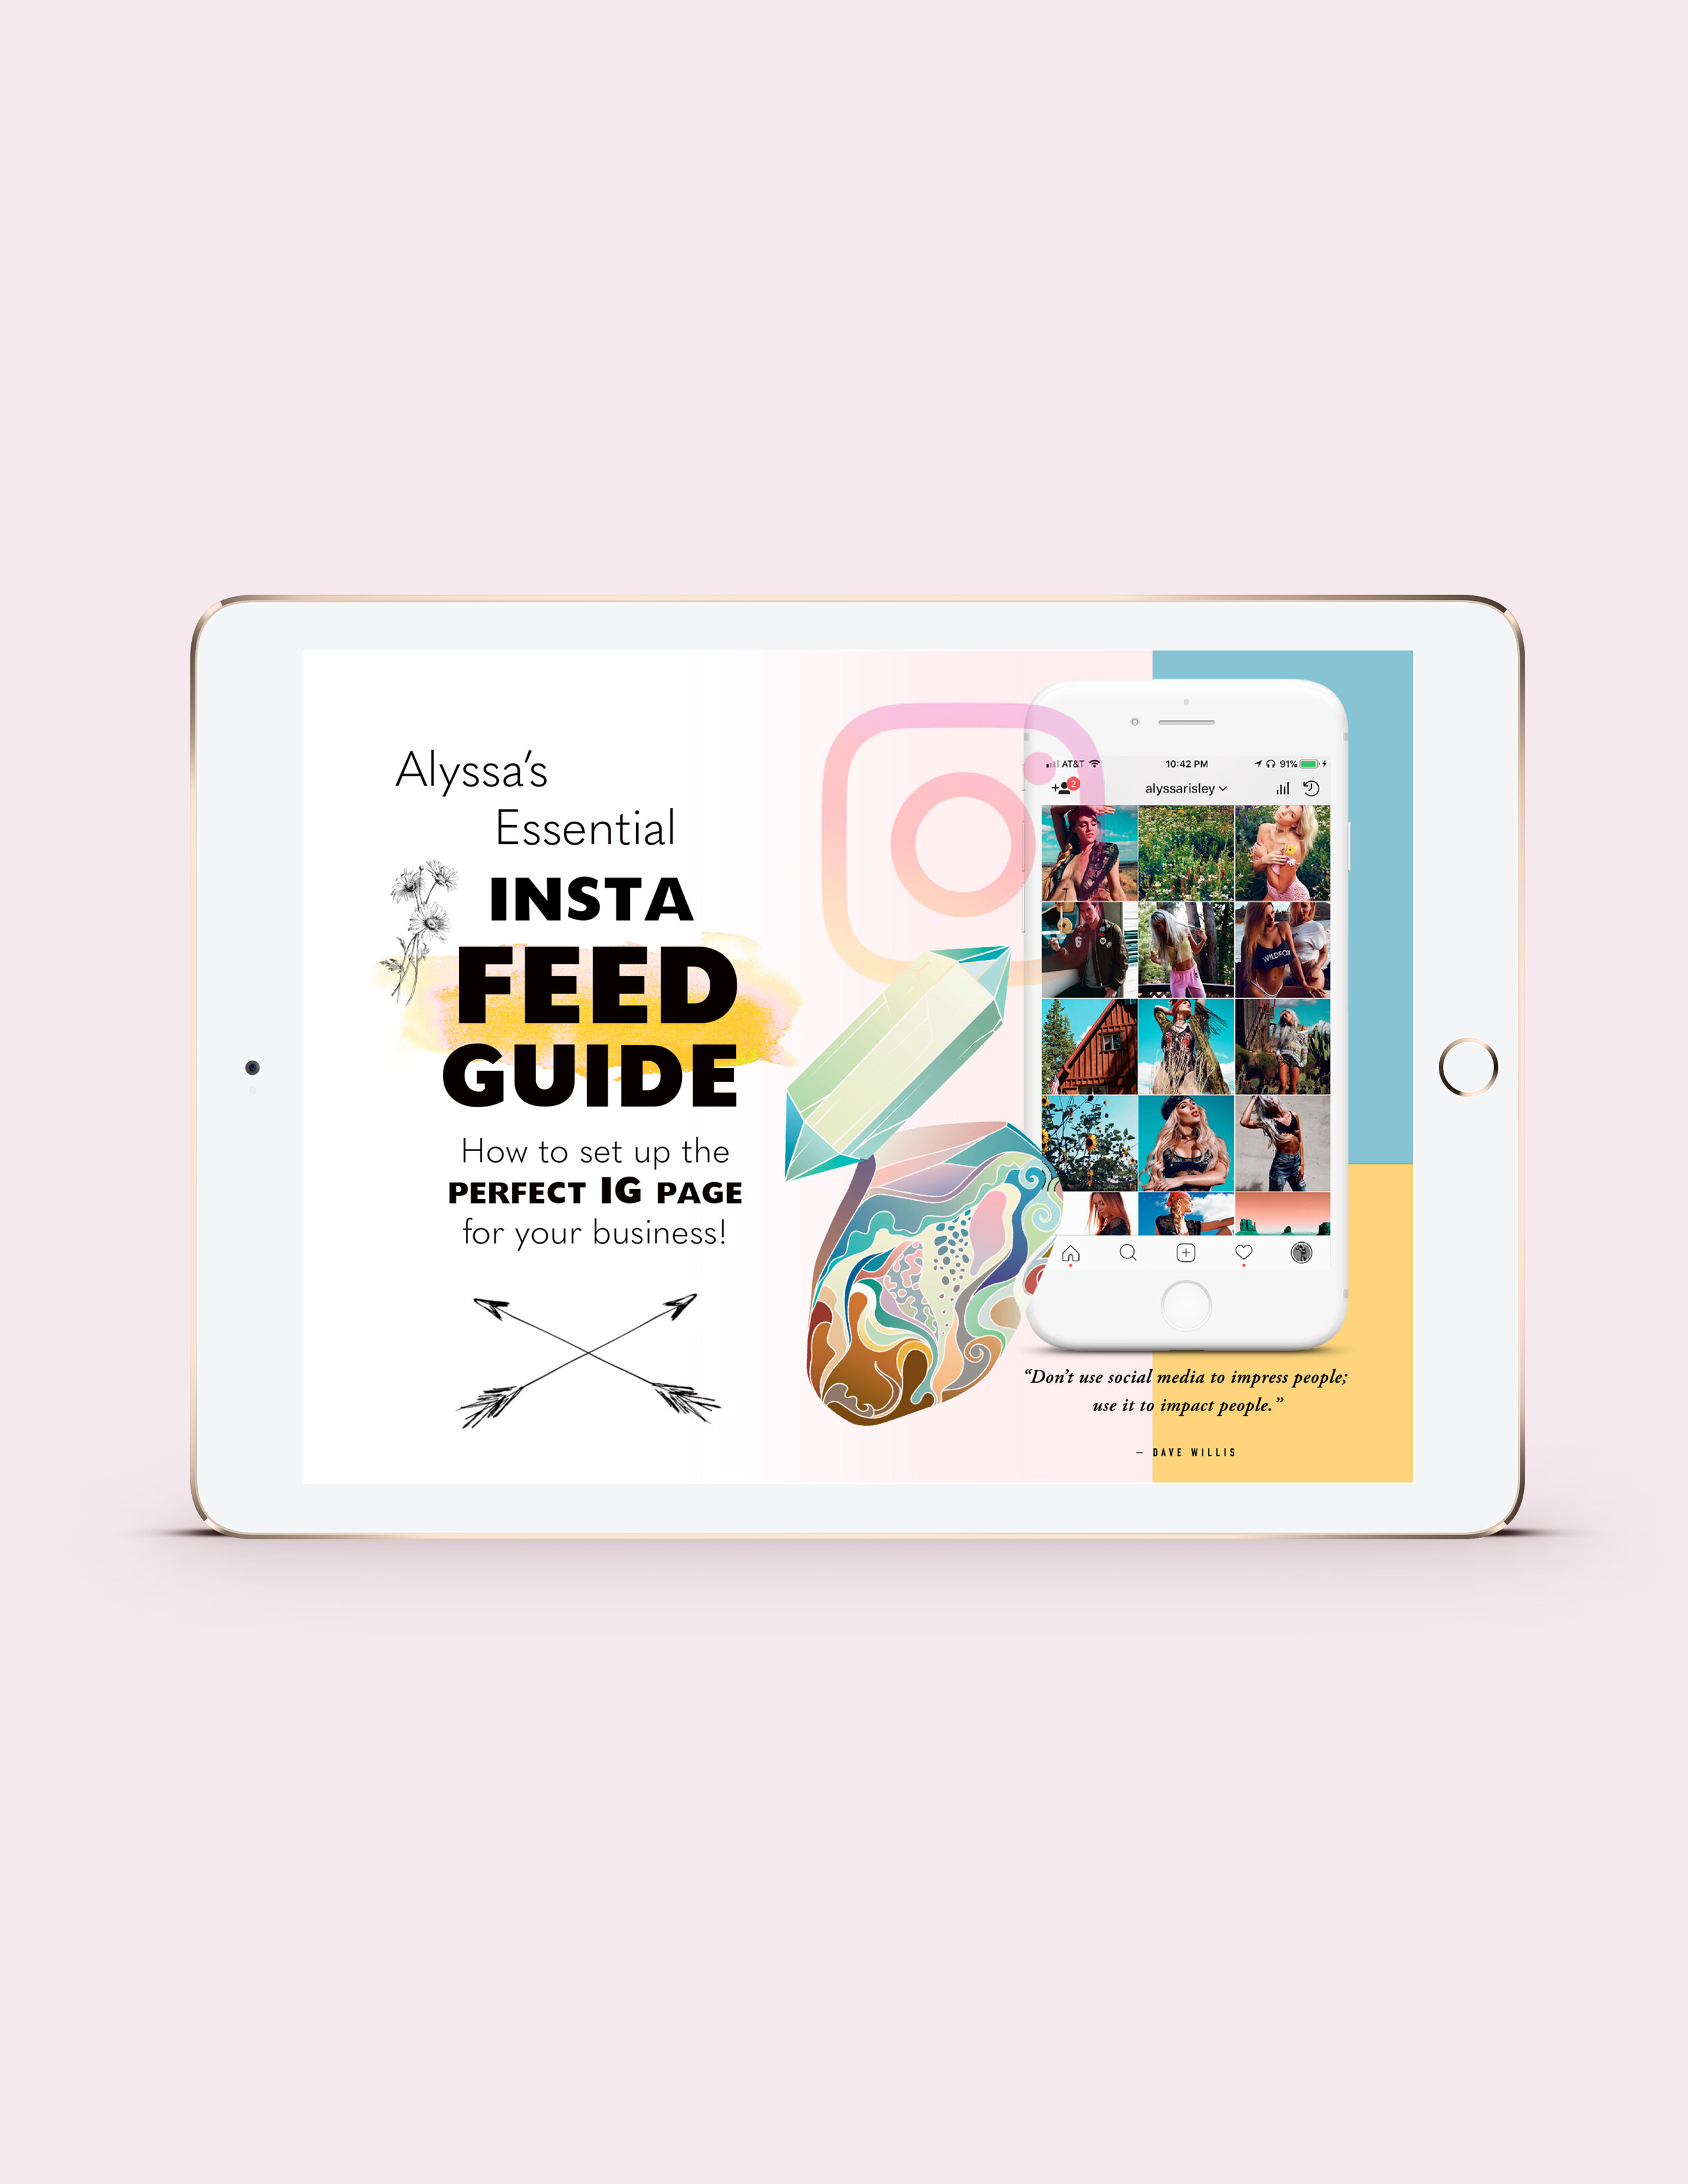 Alyssa's Insta Feed Guide - The Essential Roadmap for Setting Up the Perfect IG Page for your Business!